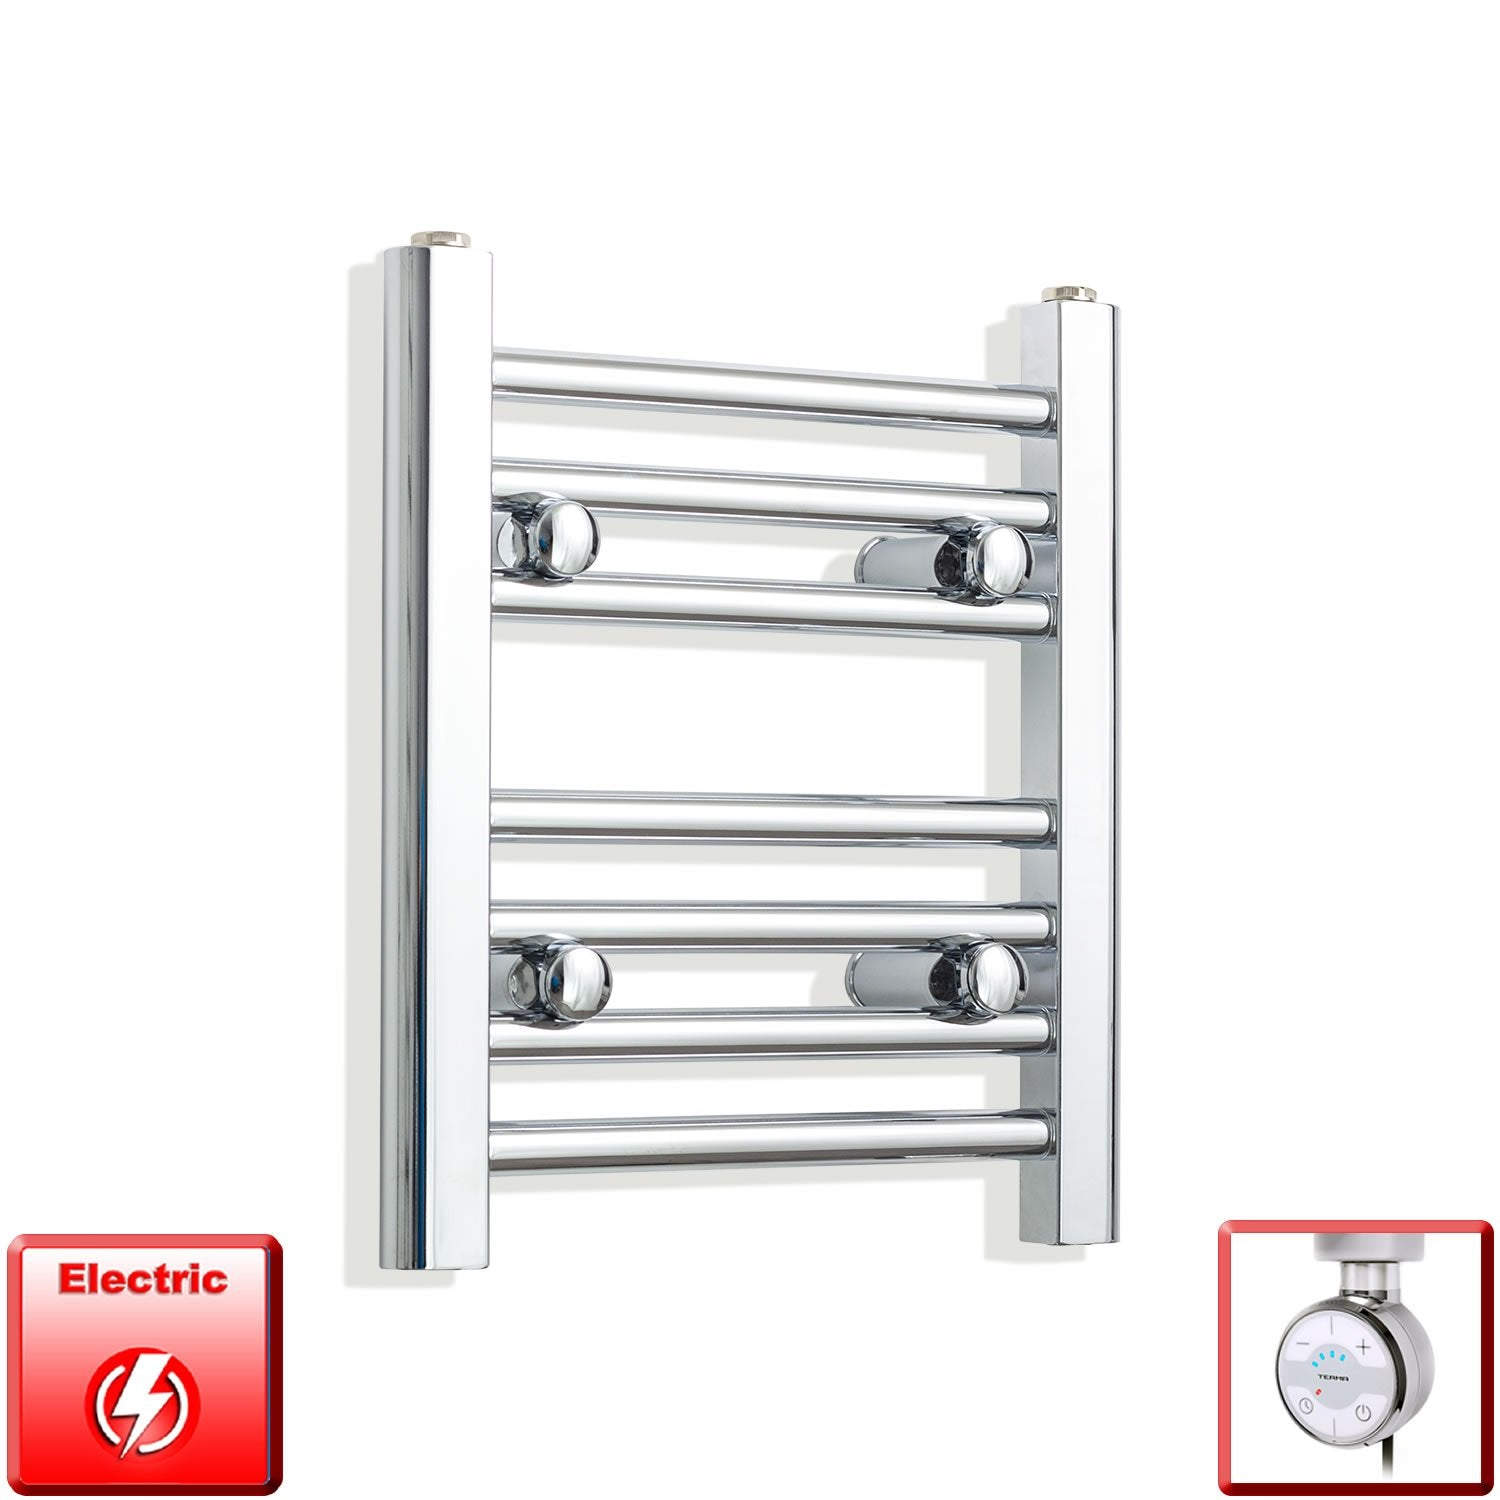 350mm Wide 400mm High Flat Chrome Pre-Filled Electric Heated Towel Rail Radiator HTR,MOA Thermostatic Element